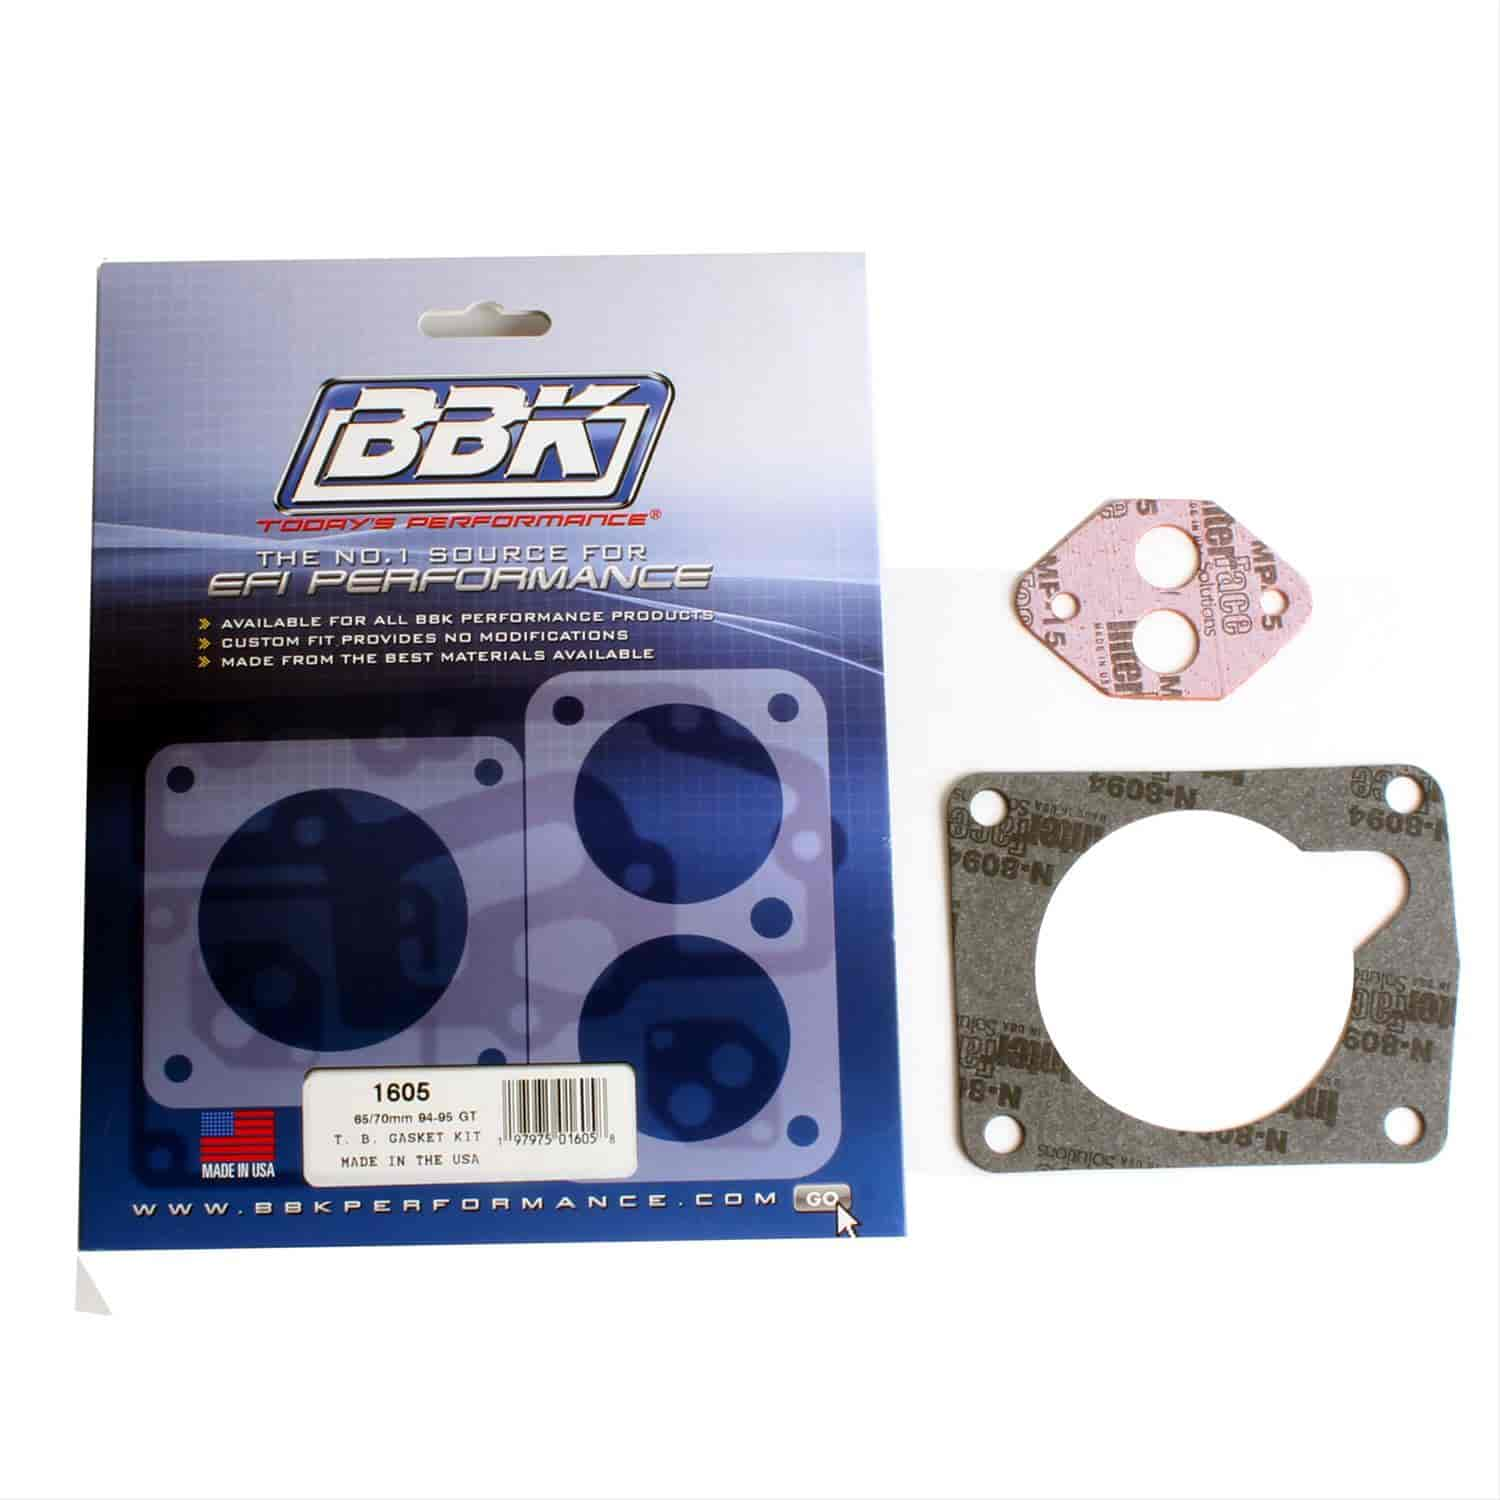 BBK Performance Products 1605 - BBK Throttle Body Gasket Kits